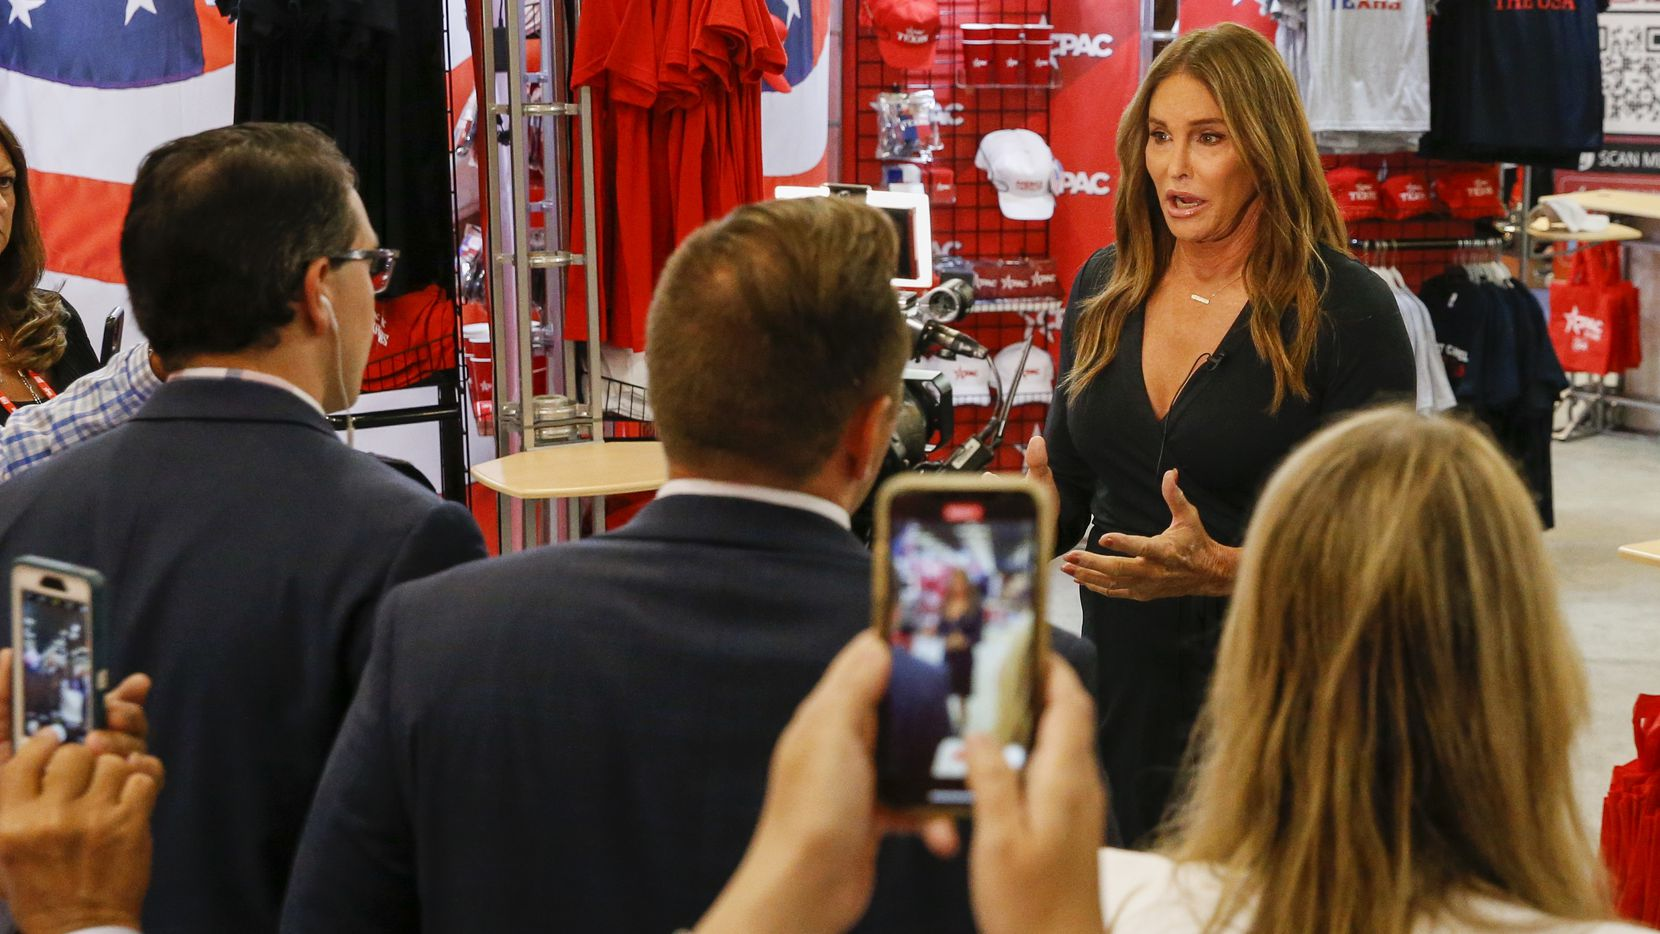 Caitlyn Jenner speaks during an interview at the Conservative Political Action Conference on Saturday, July 10, 2021, in Dallas. (Elias Valverde II/The Dallas Morning News)